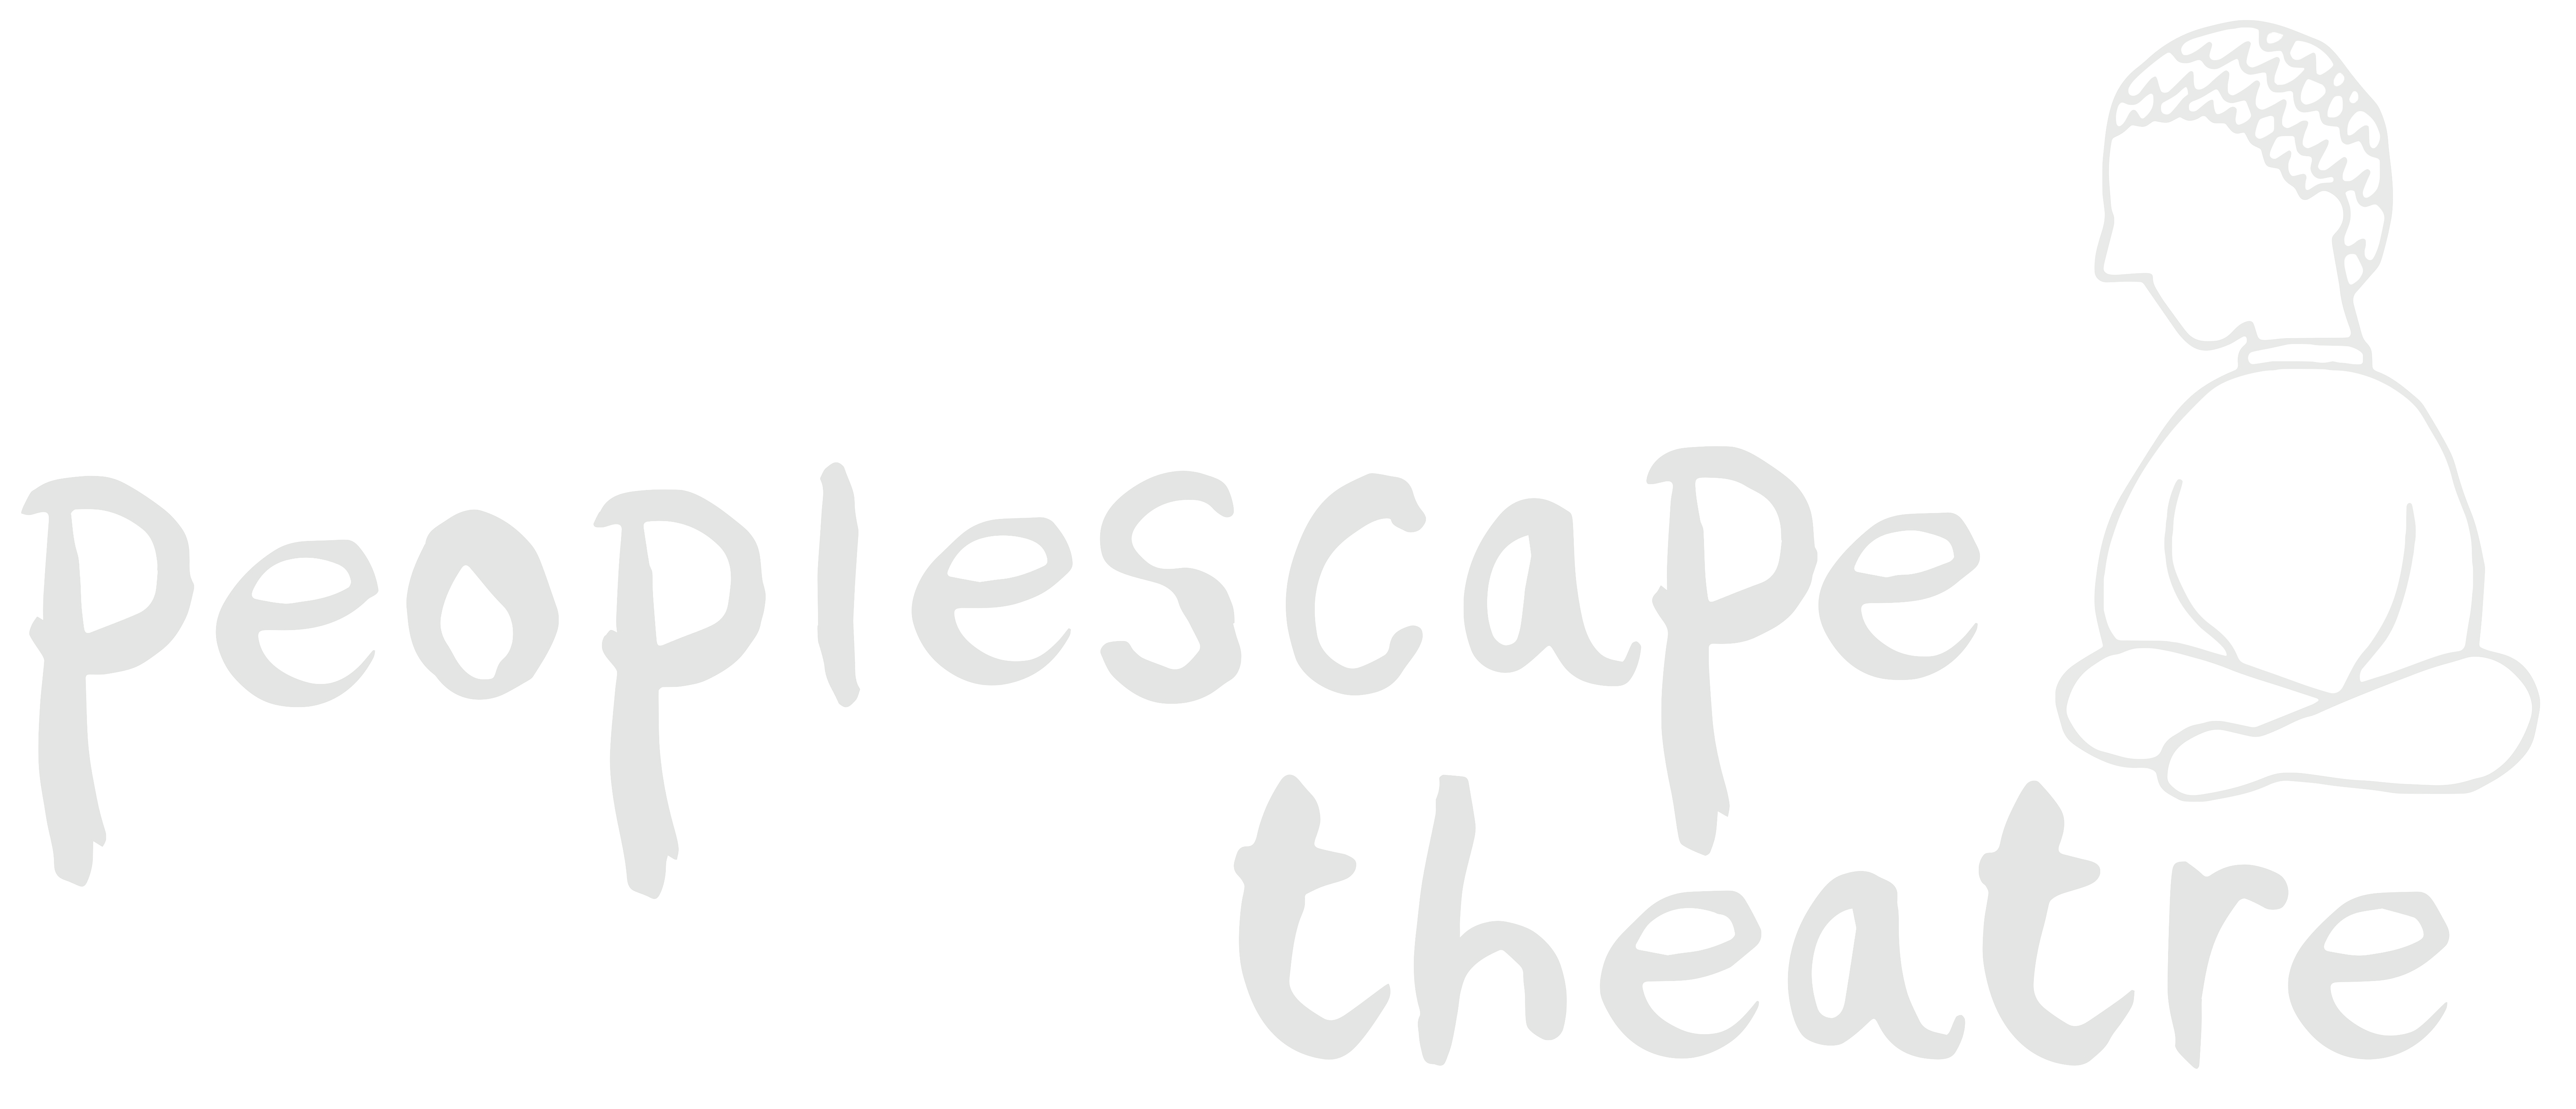 Peoplescape theatre